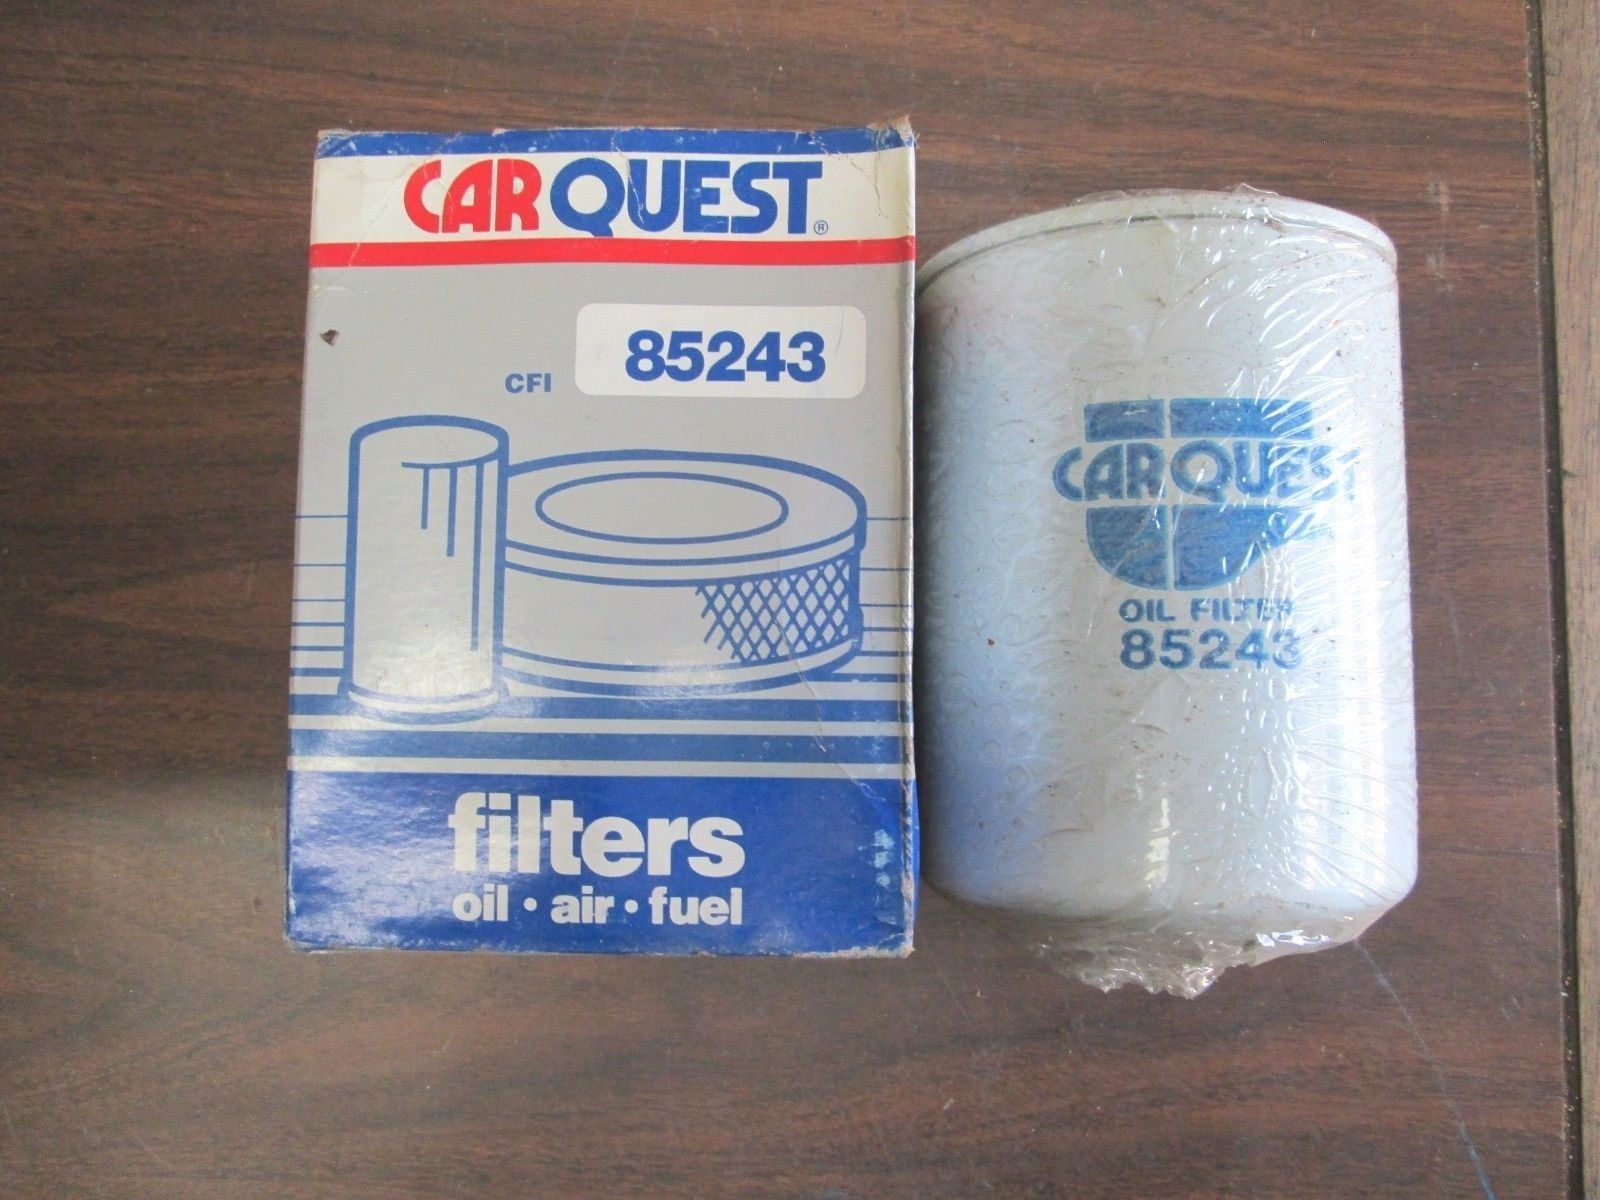 Primary image for 85243, Carquest, Oil Filter